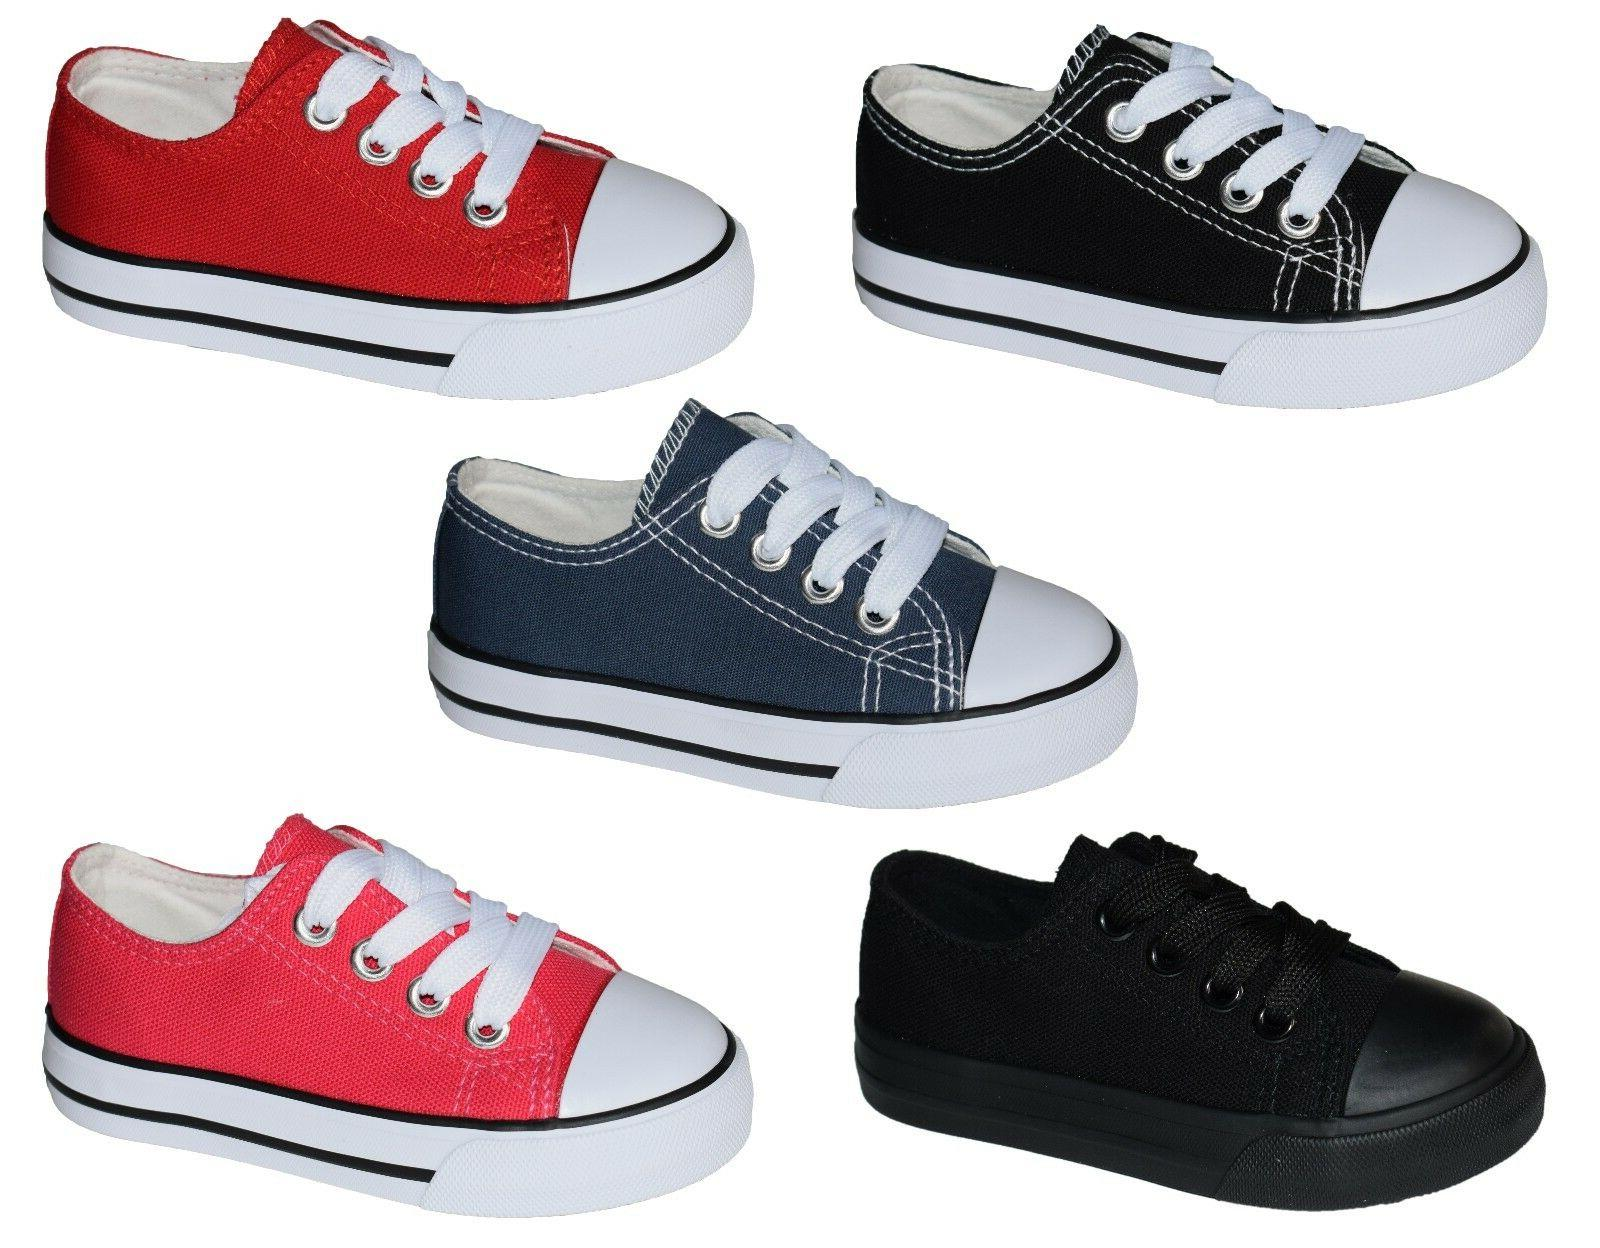 New Girls Classic Tennis Shoes Skater Sneakers